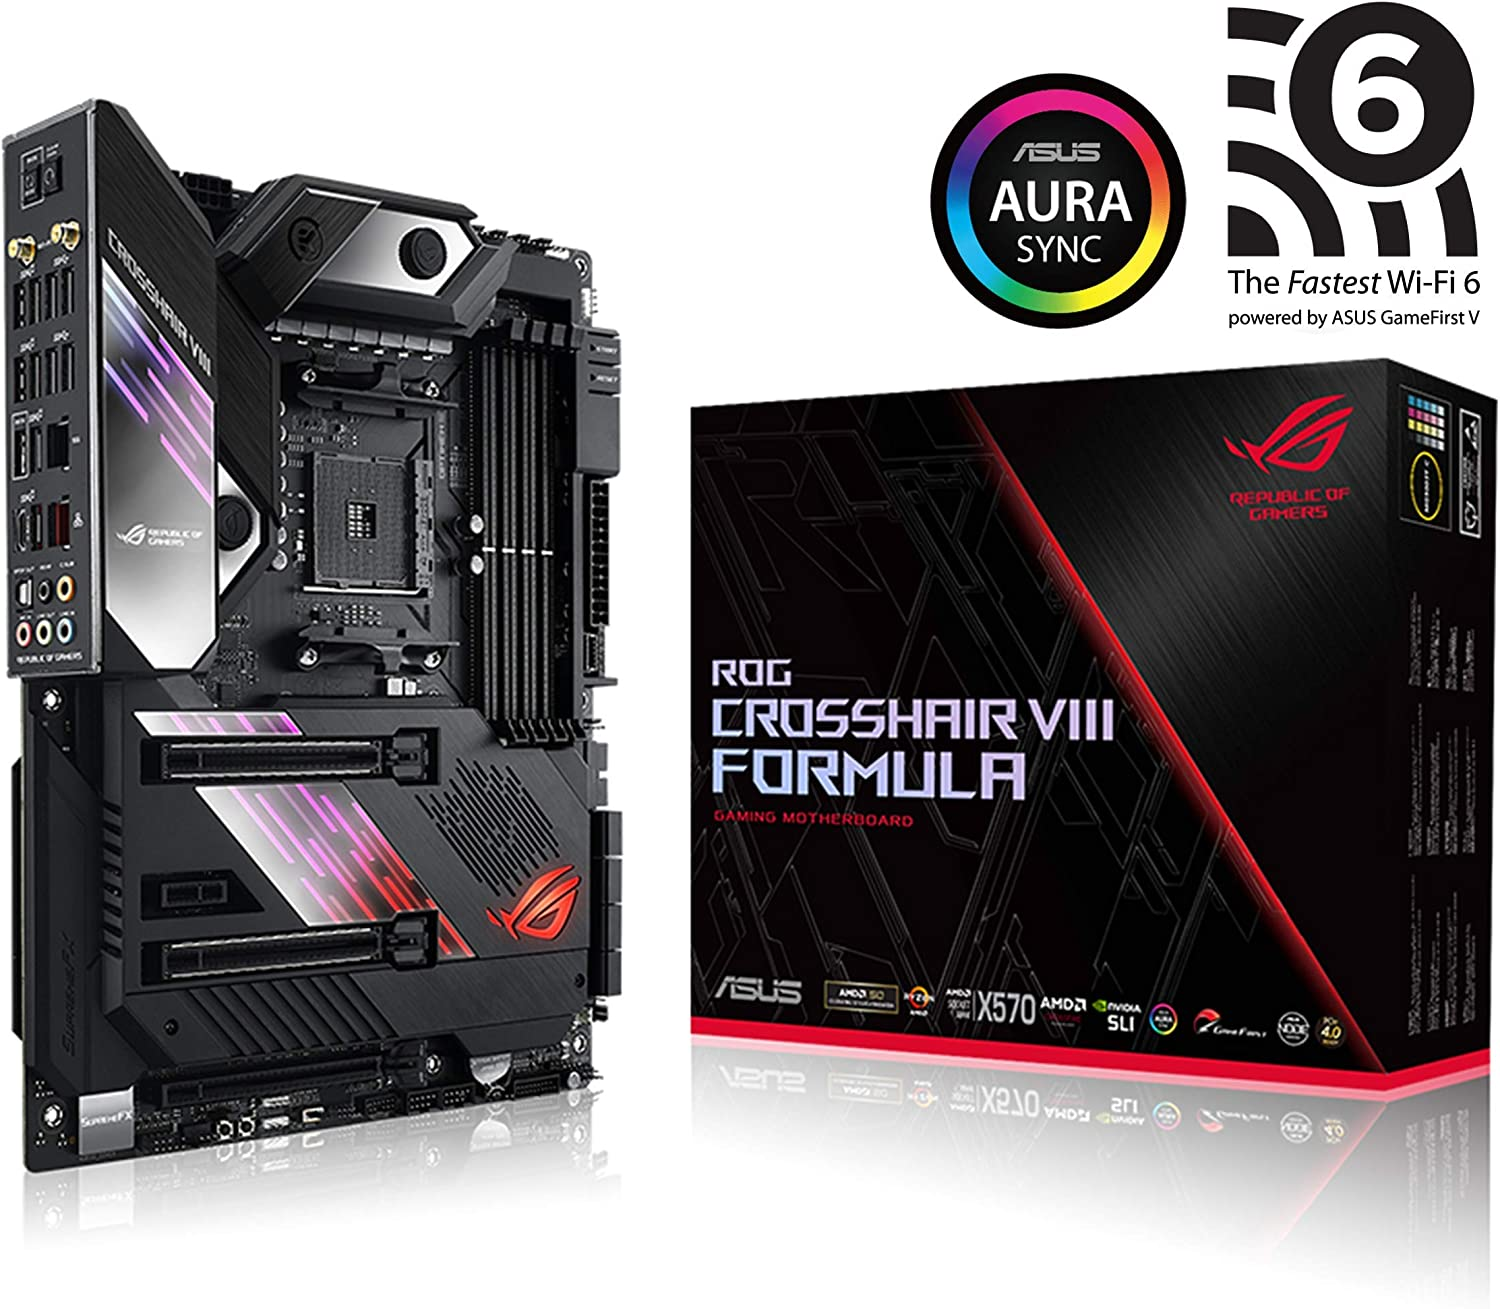 Asus ROG X570 Crosshair VIII Formula ATX Motherboard with PCIe 4.0, on-Board WiFi 6 (802.11Ax), 5 Gbps LAN, USB 3.2, SATA, M.2, Node and Aura Sync RGB Lighting